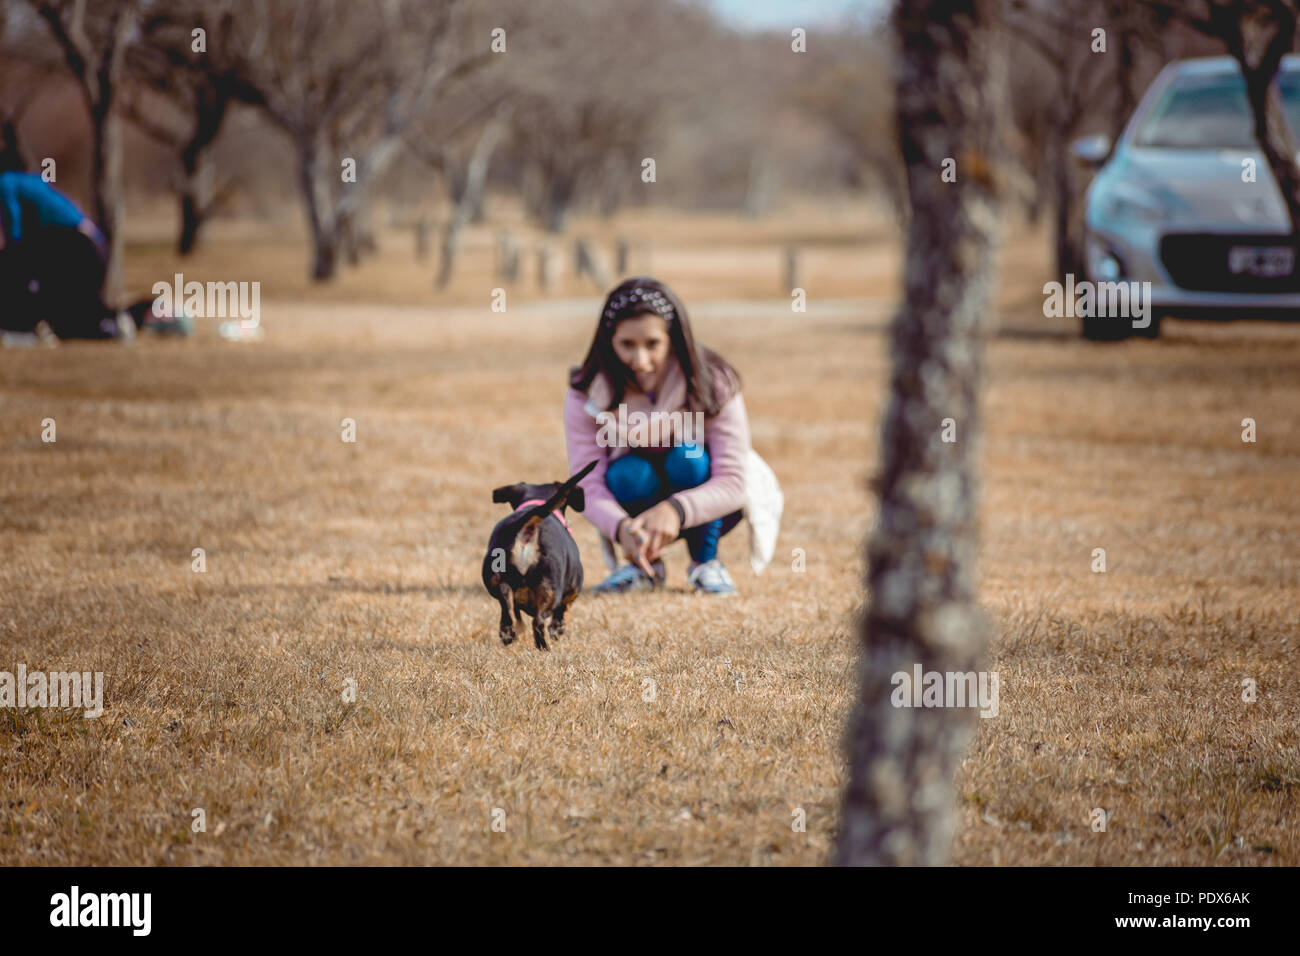 Ypung girl playing with dogs - Stock Image